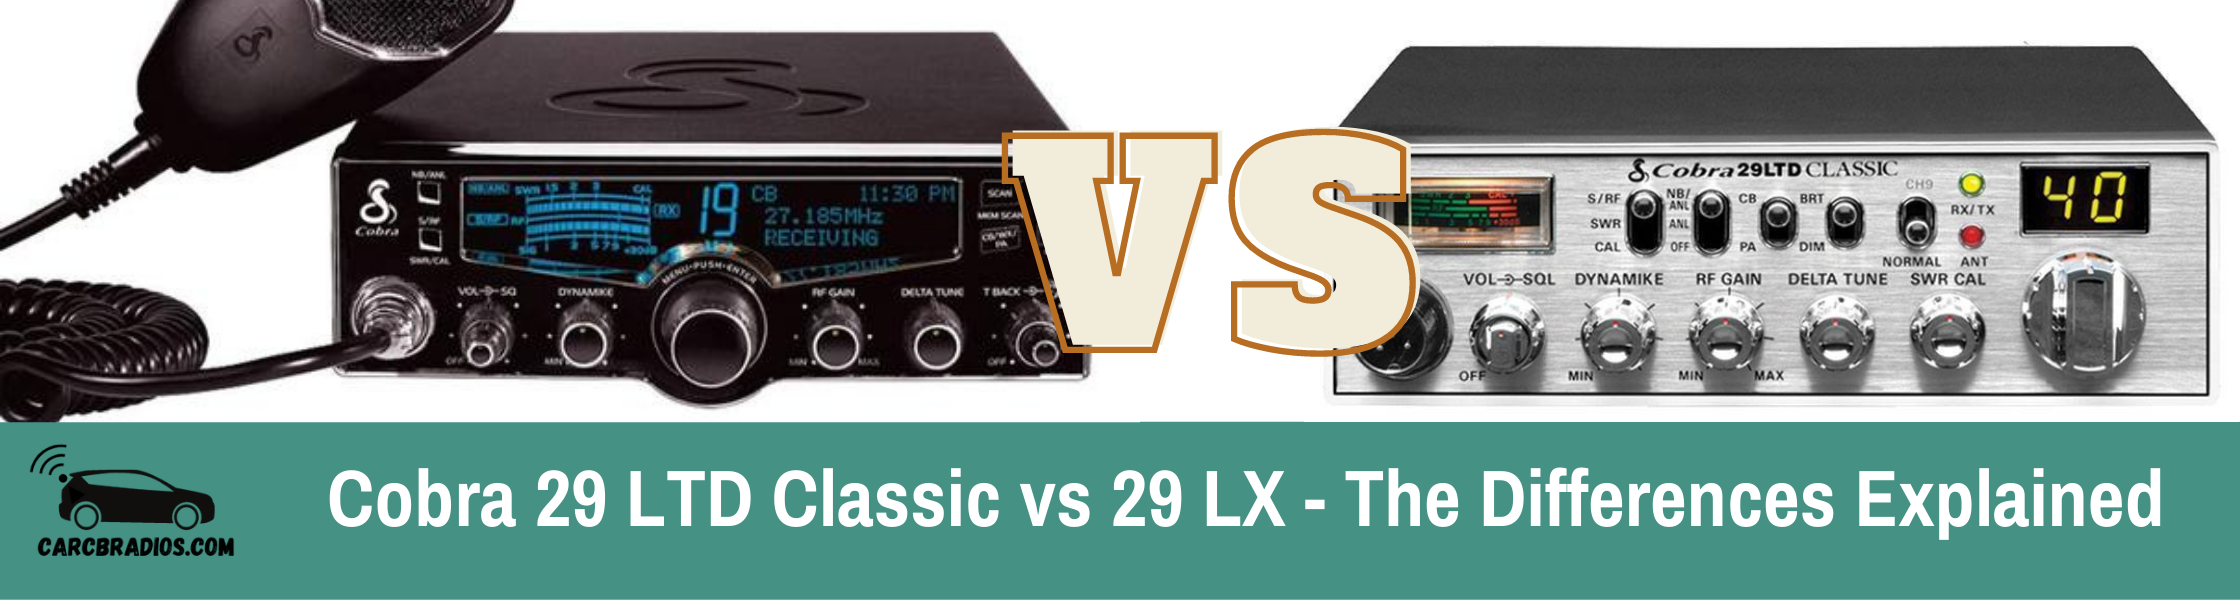 Cobra 29 LTD Classic vs 29 LX - The Differences Explained: The biggest difference between the Cobra 29 LTD and the 29 LX offers a few unique features including automatic weather scan and Radio Check Diagnostic / Antenna Calibration.